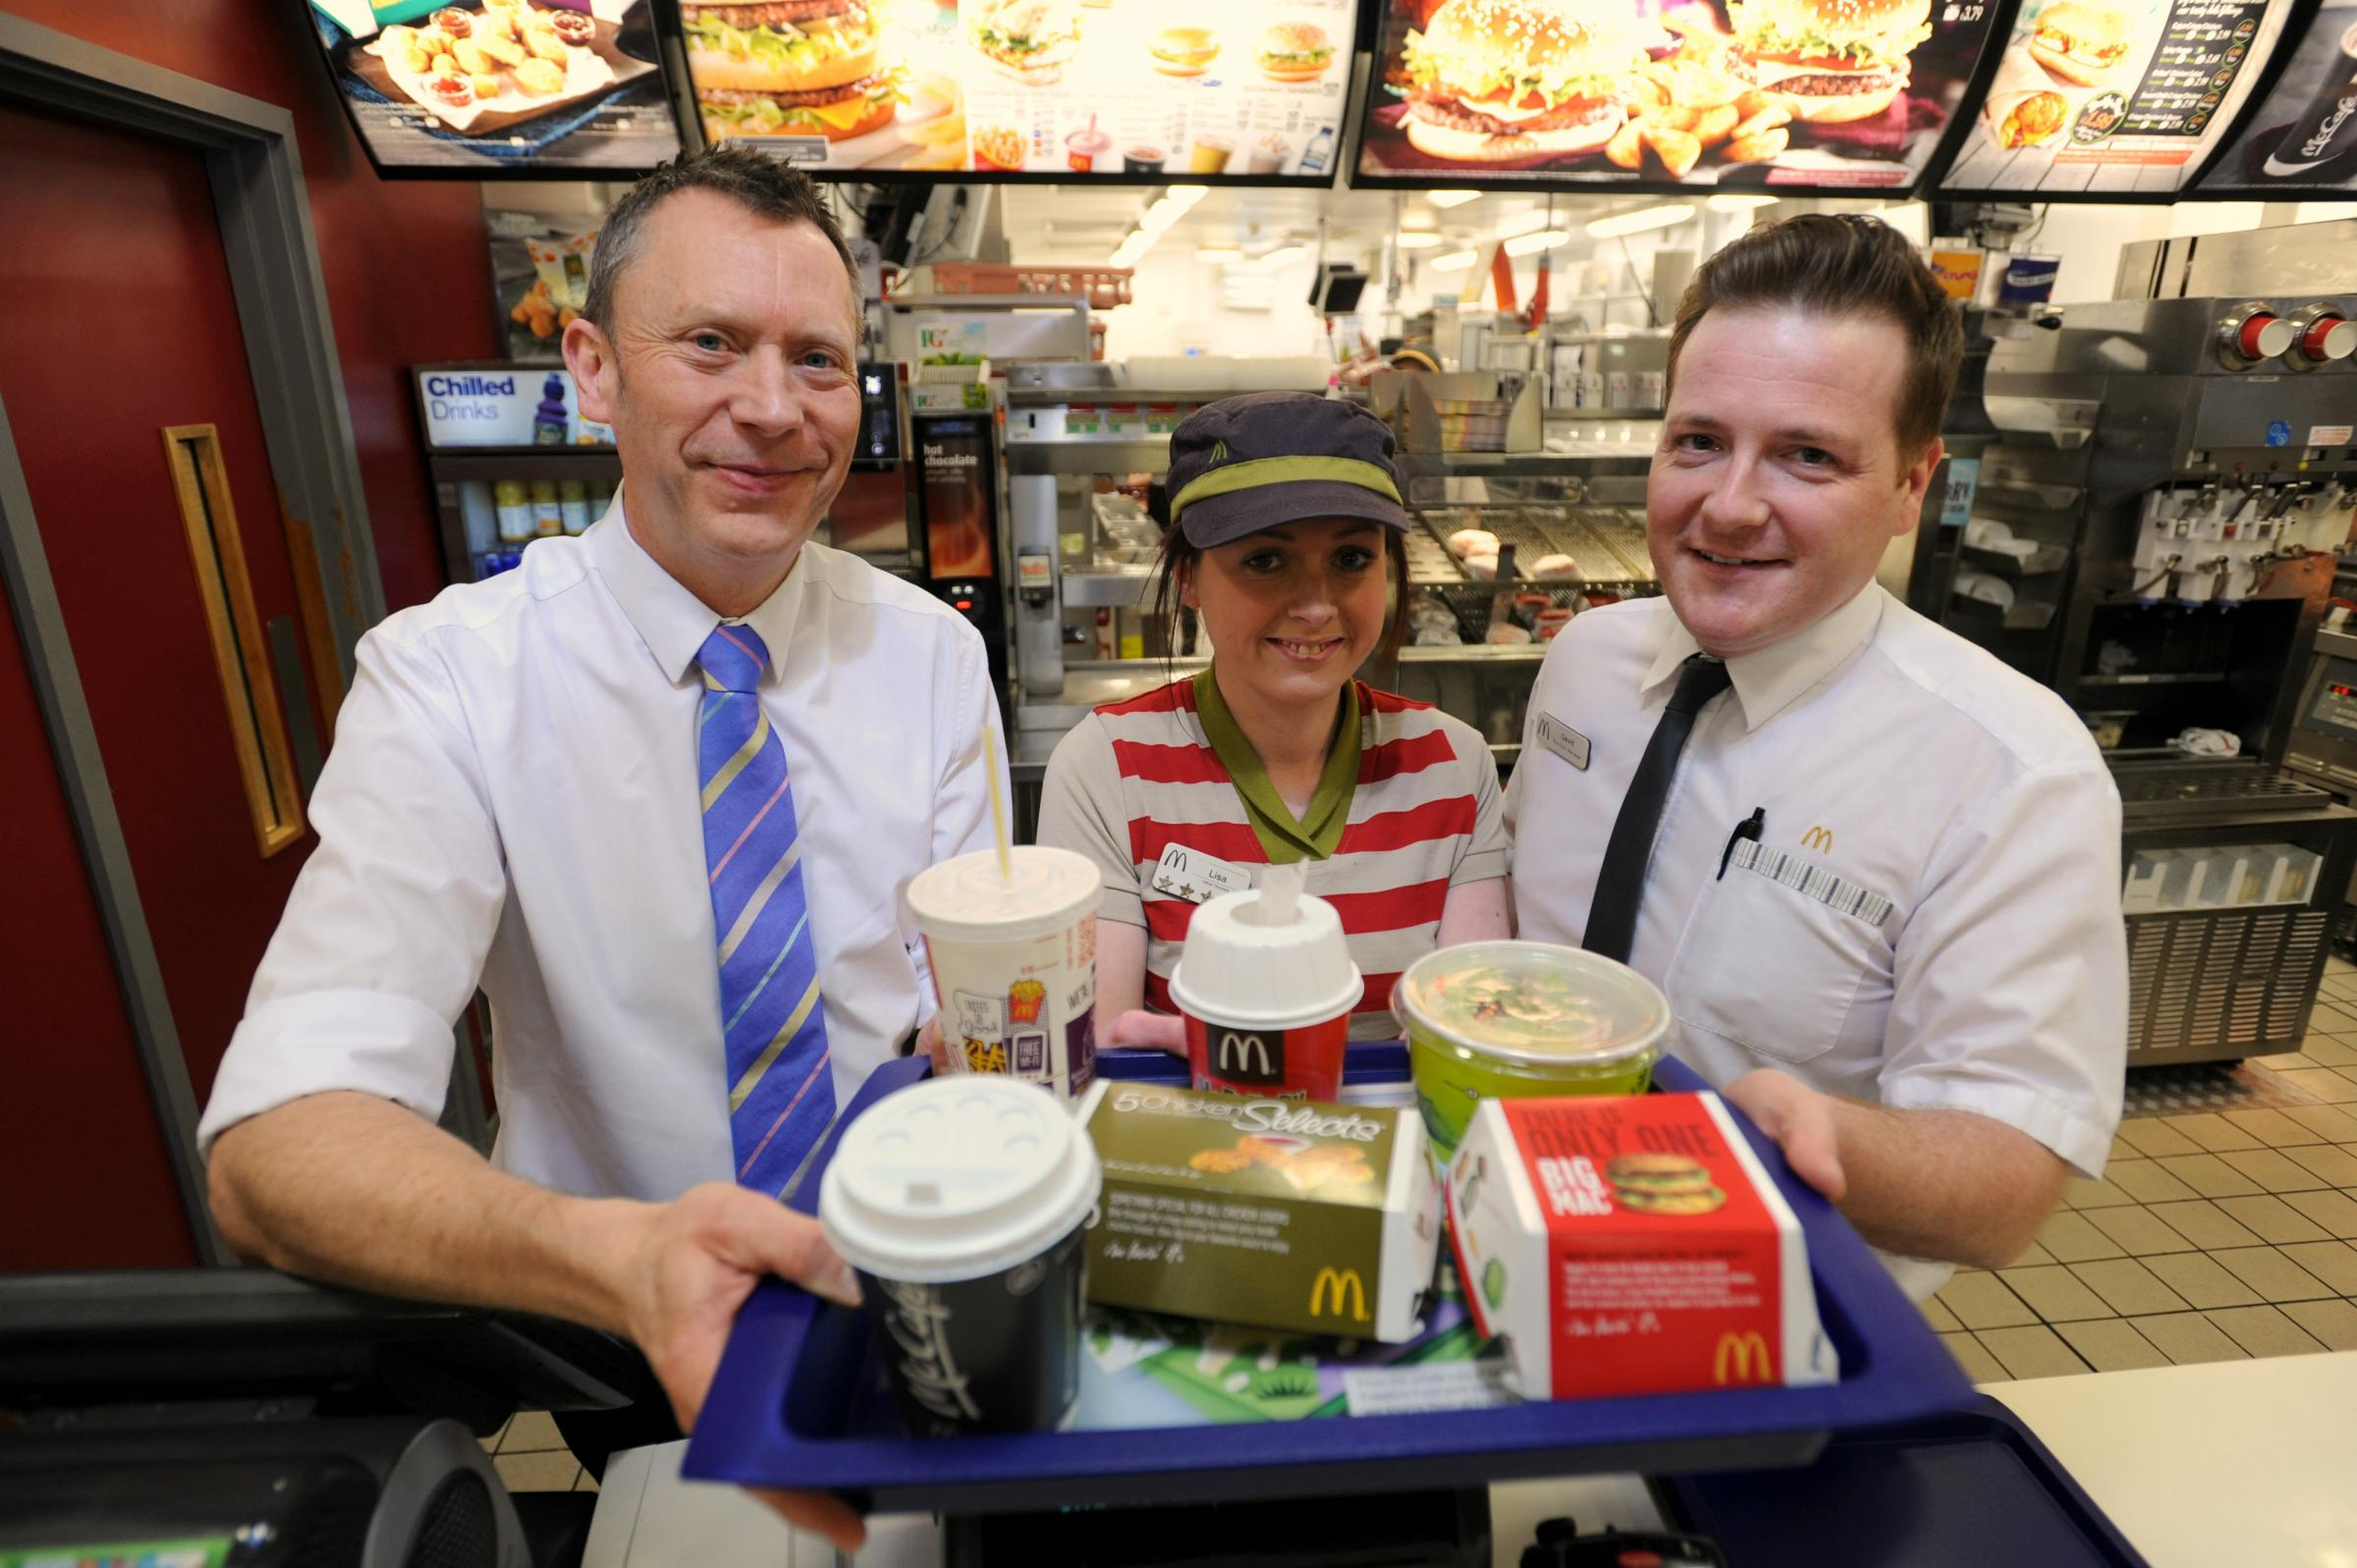 (l-r) McDonald's francisee Paul Booth, crew trainer Lisa Carter and business manager for the Stroud branch Dave Roebuck